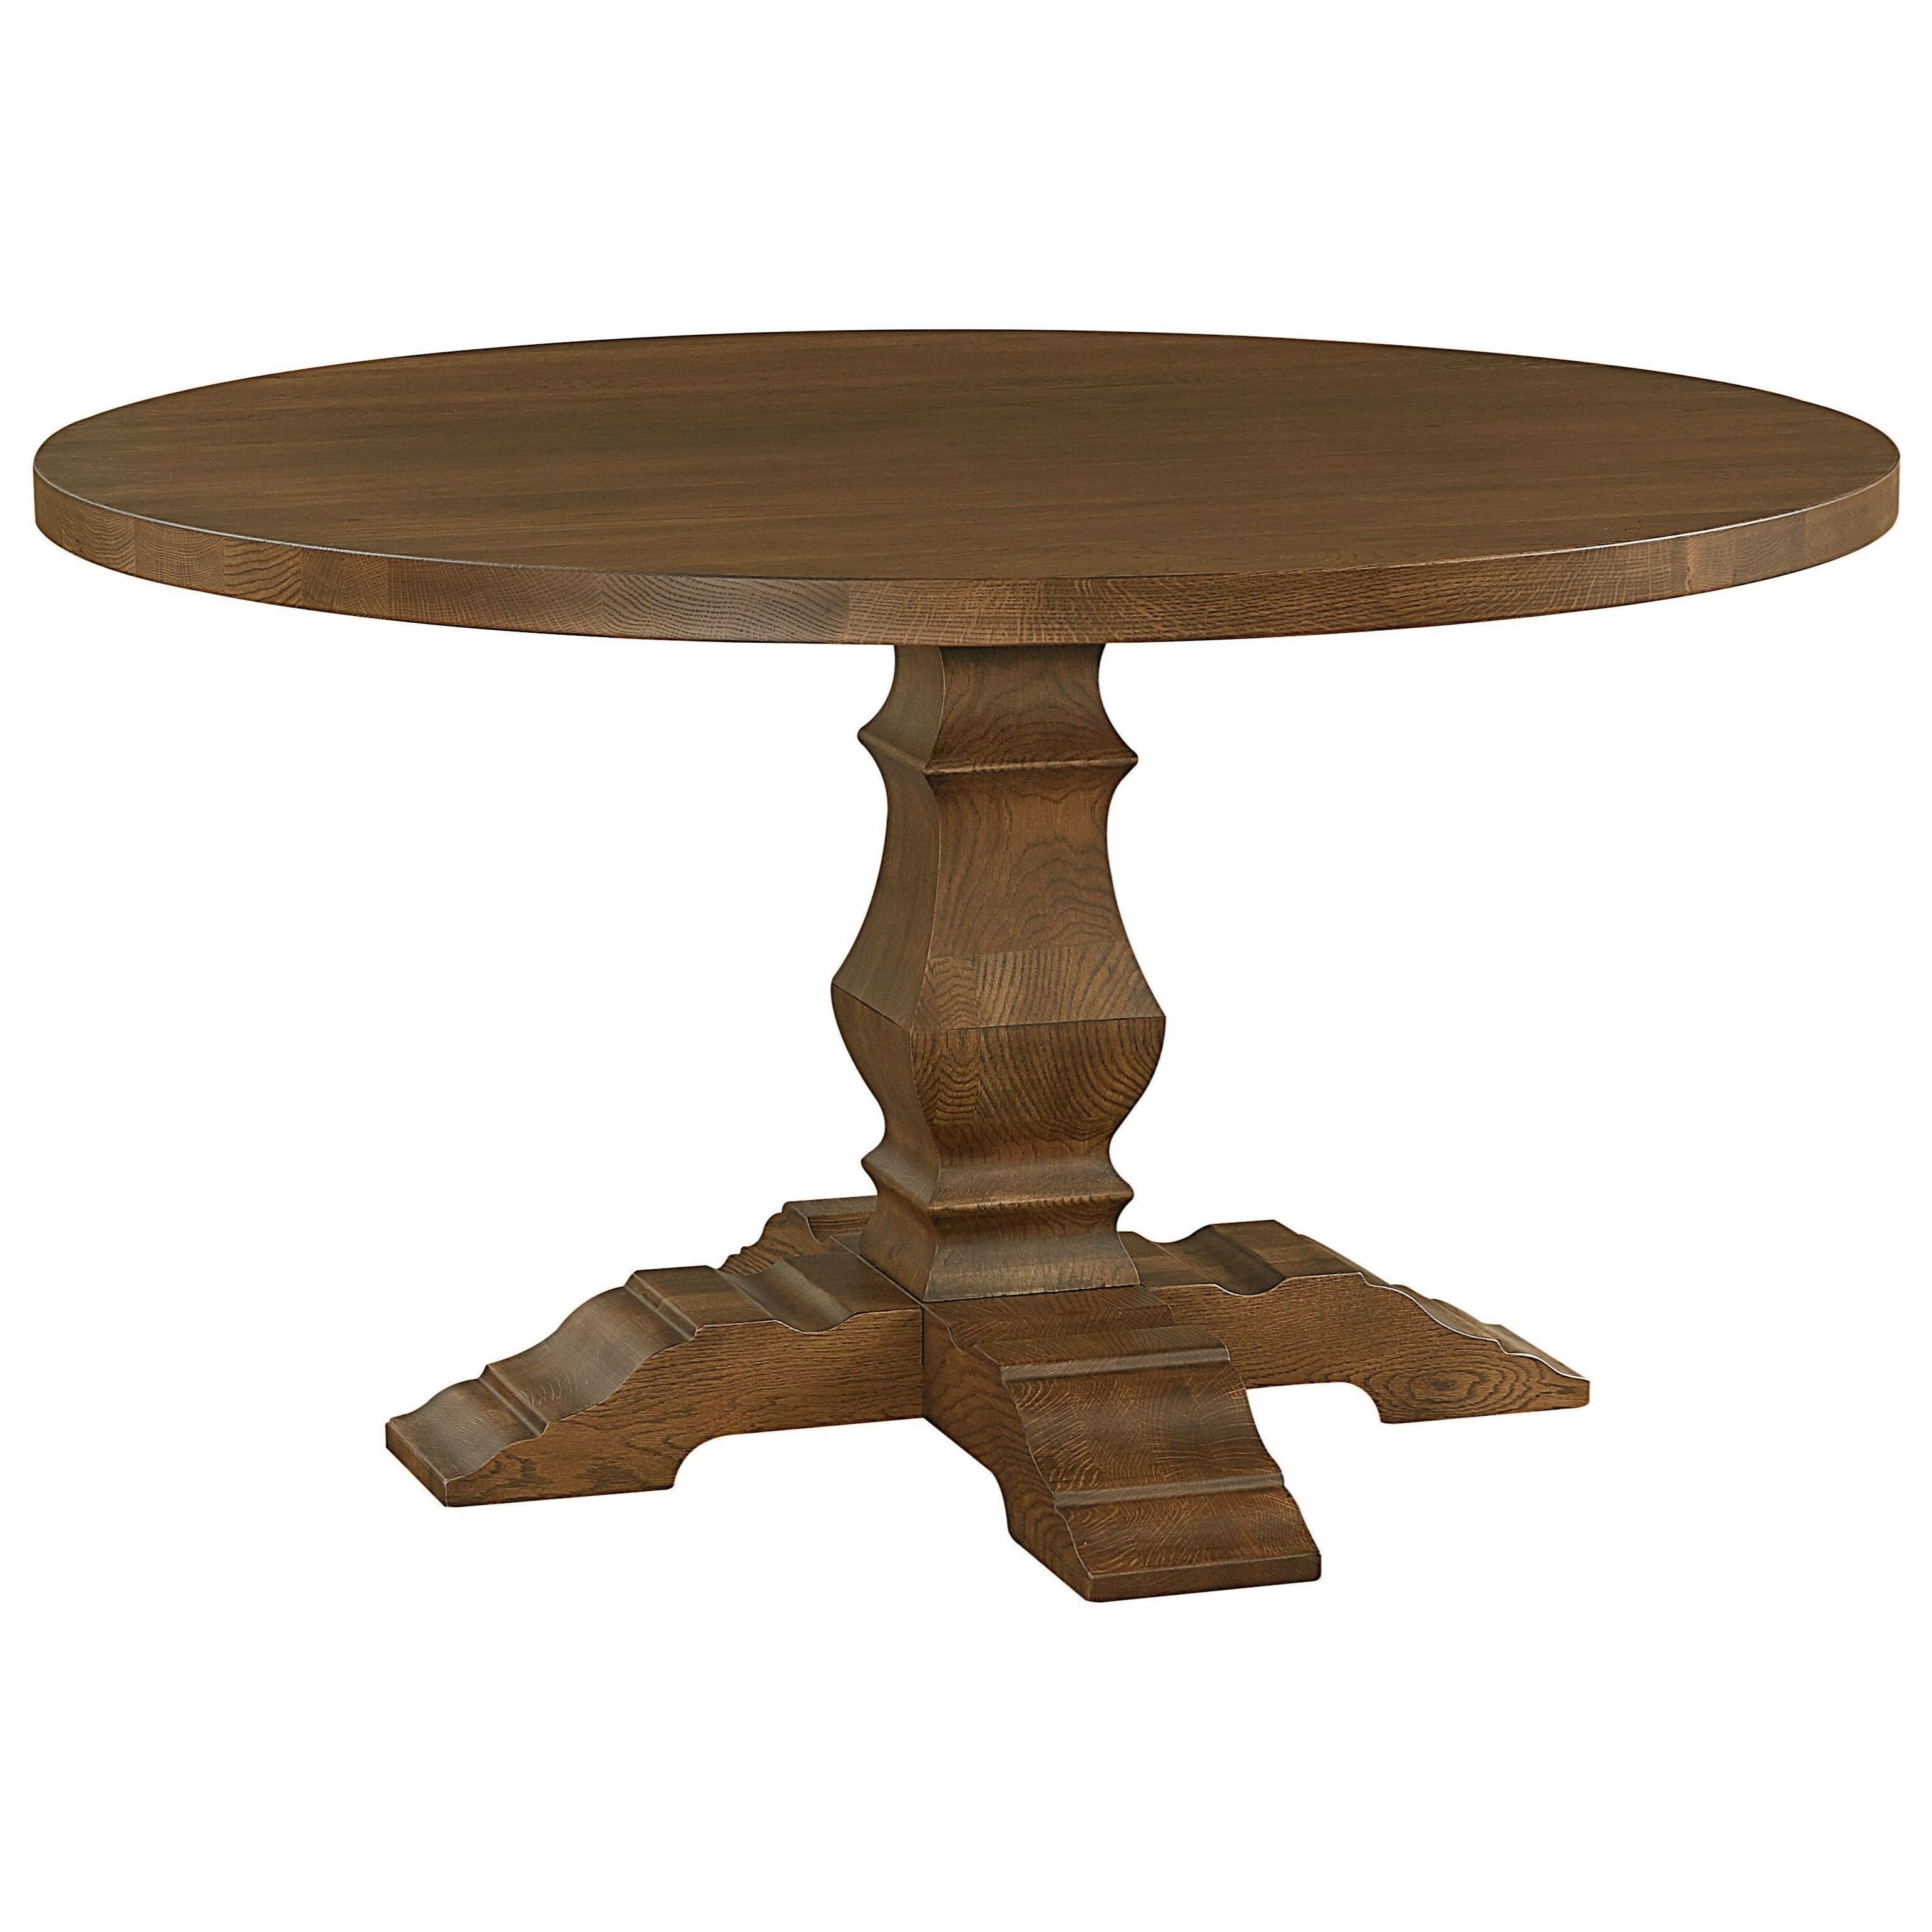 BenchMade Dining Table by Bassett at Suburban Furniture